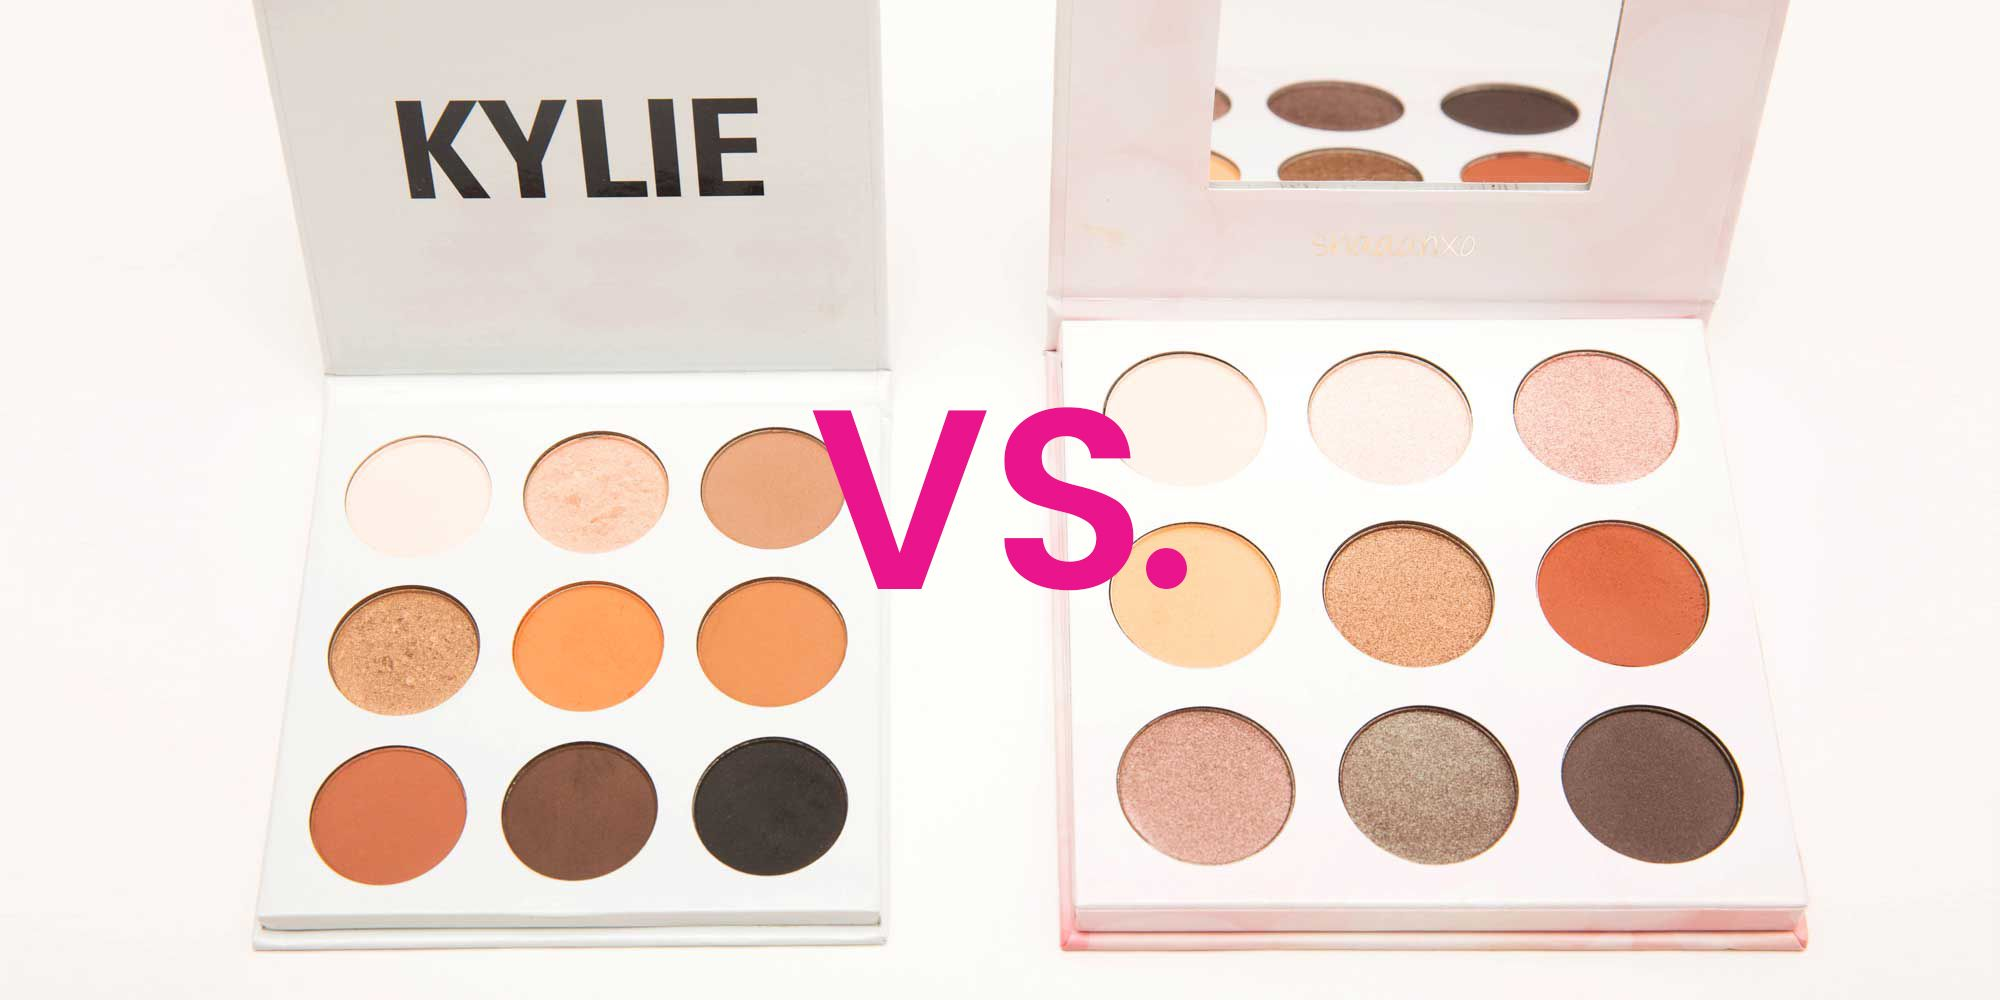 I Compared Kylie Jenner's Eye Shadow Palette to the One Twitter Said She Copied. Here's What Happened.